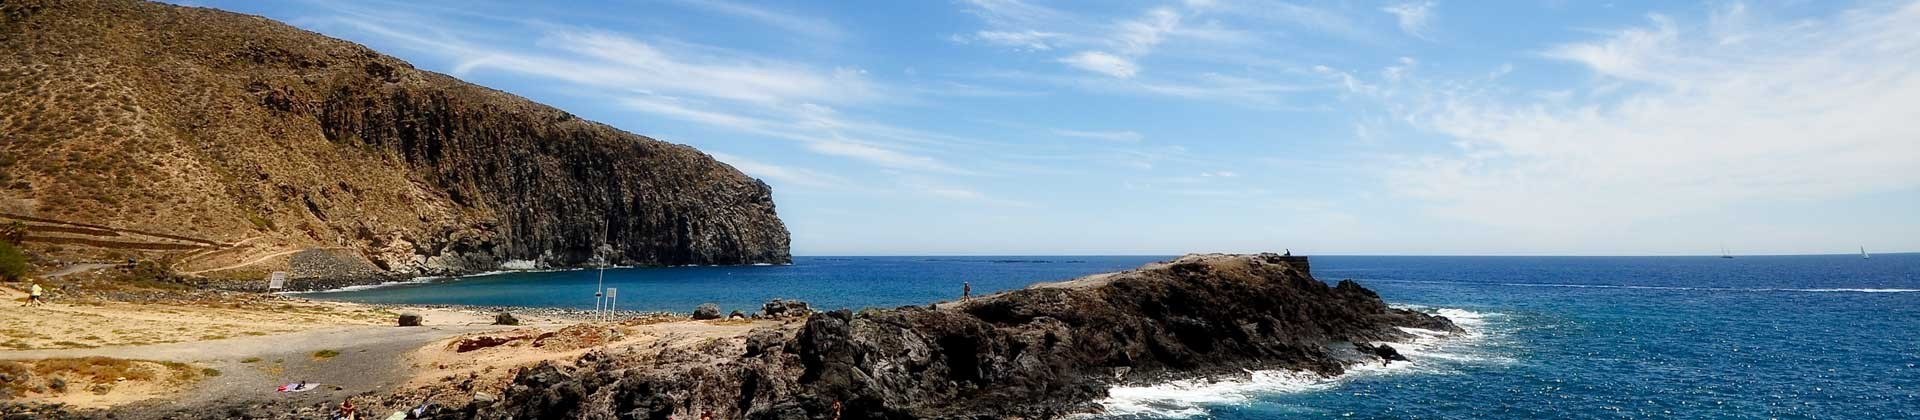 https://www.goodmorningtenerife.com/wp-content/uploads/2014/08/03_slide_landscape_GM_Tenerife-1920x420.jpg